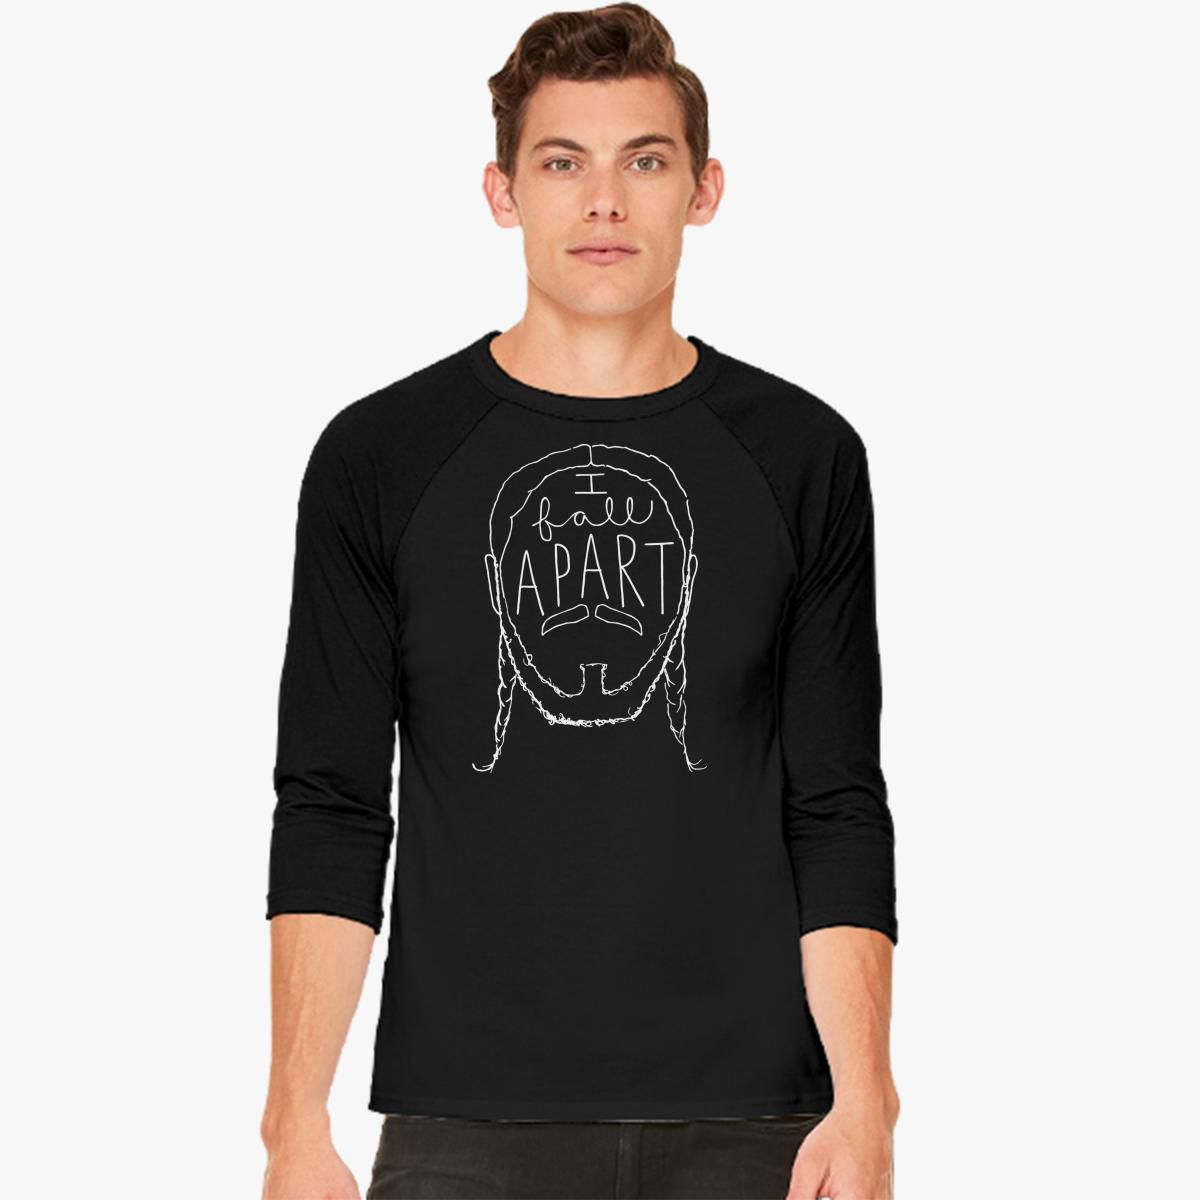 Post Malone I Fall Apart Guitar: Post Malone I Fall Apart Baseball T-shirt